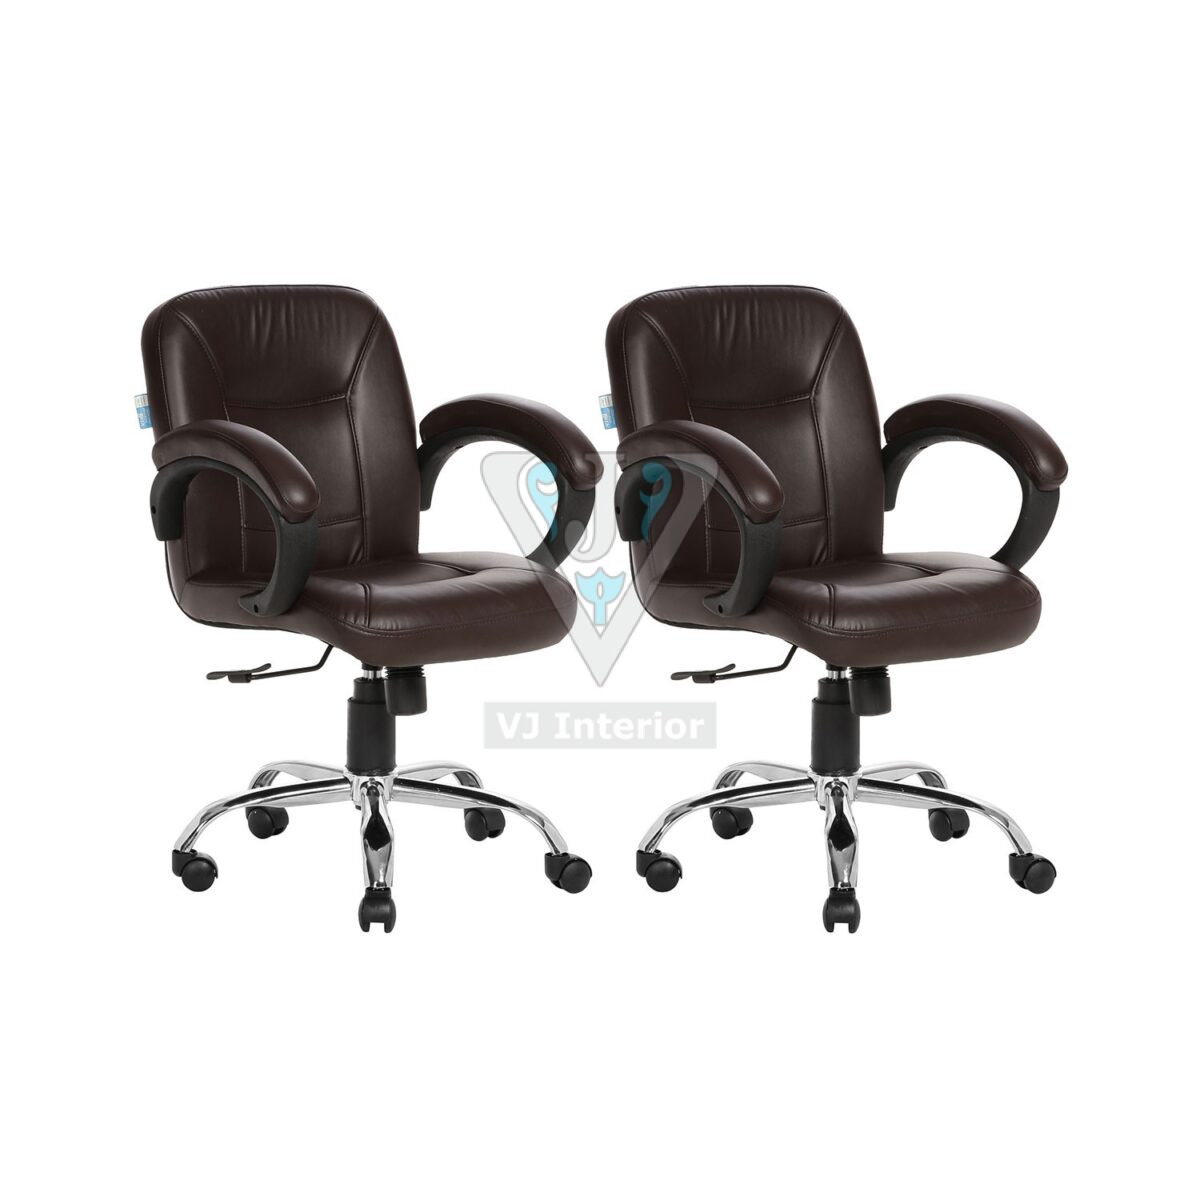 Buy One Get One Free Lowback Office Chair Brown (Acabado)